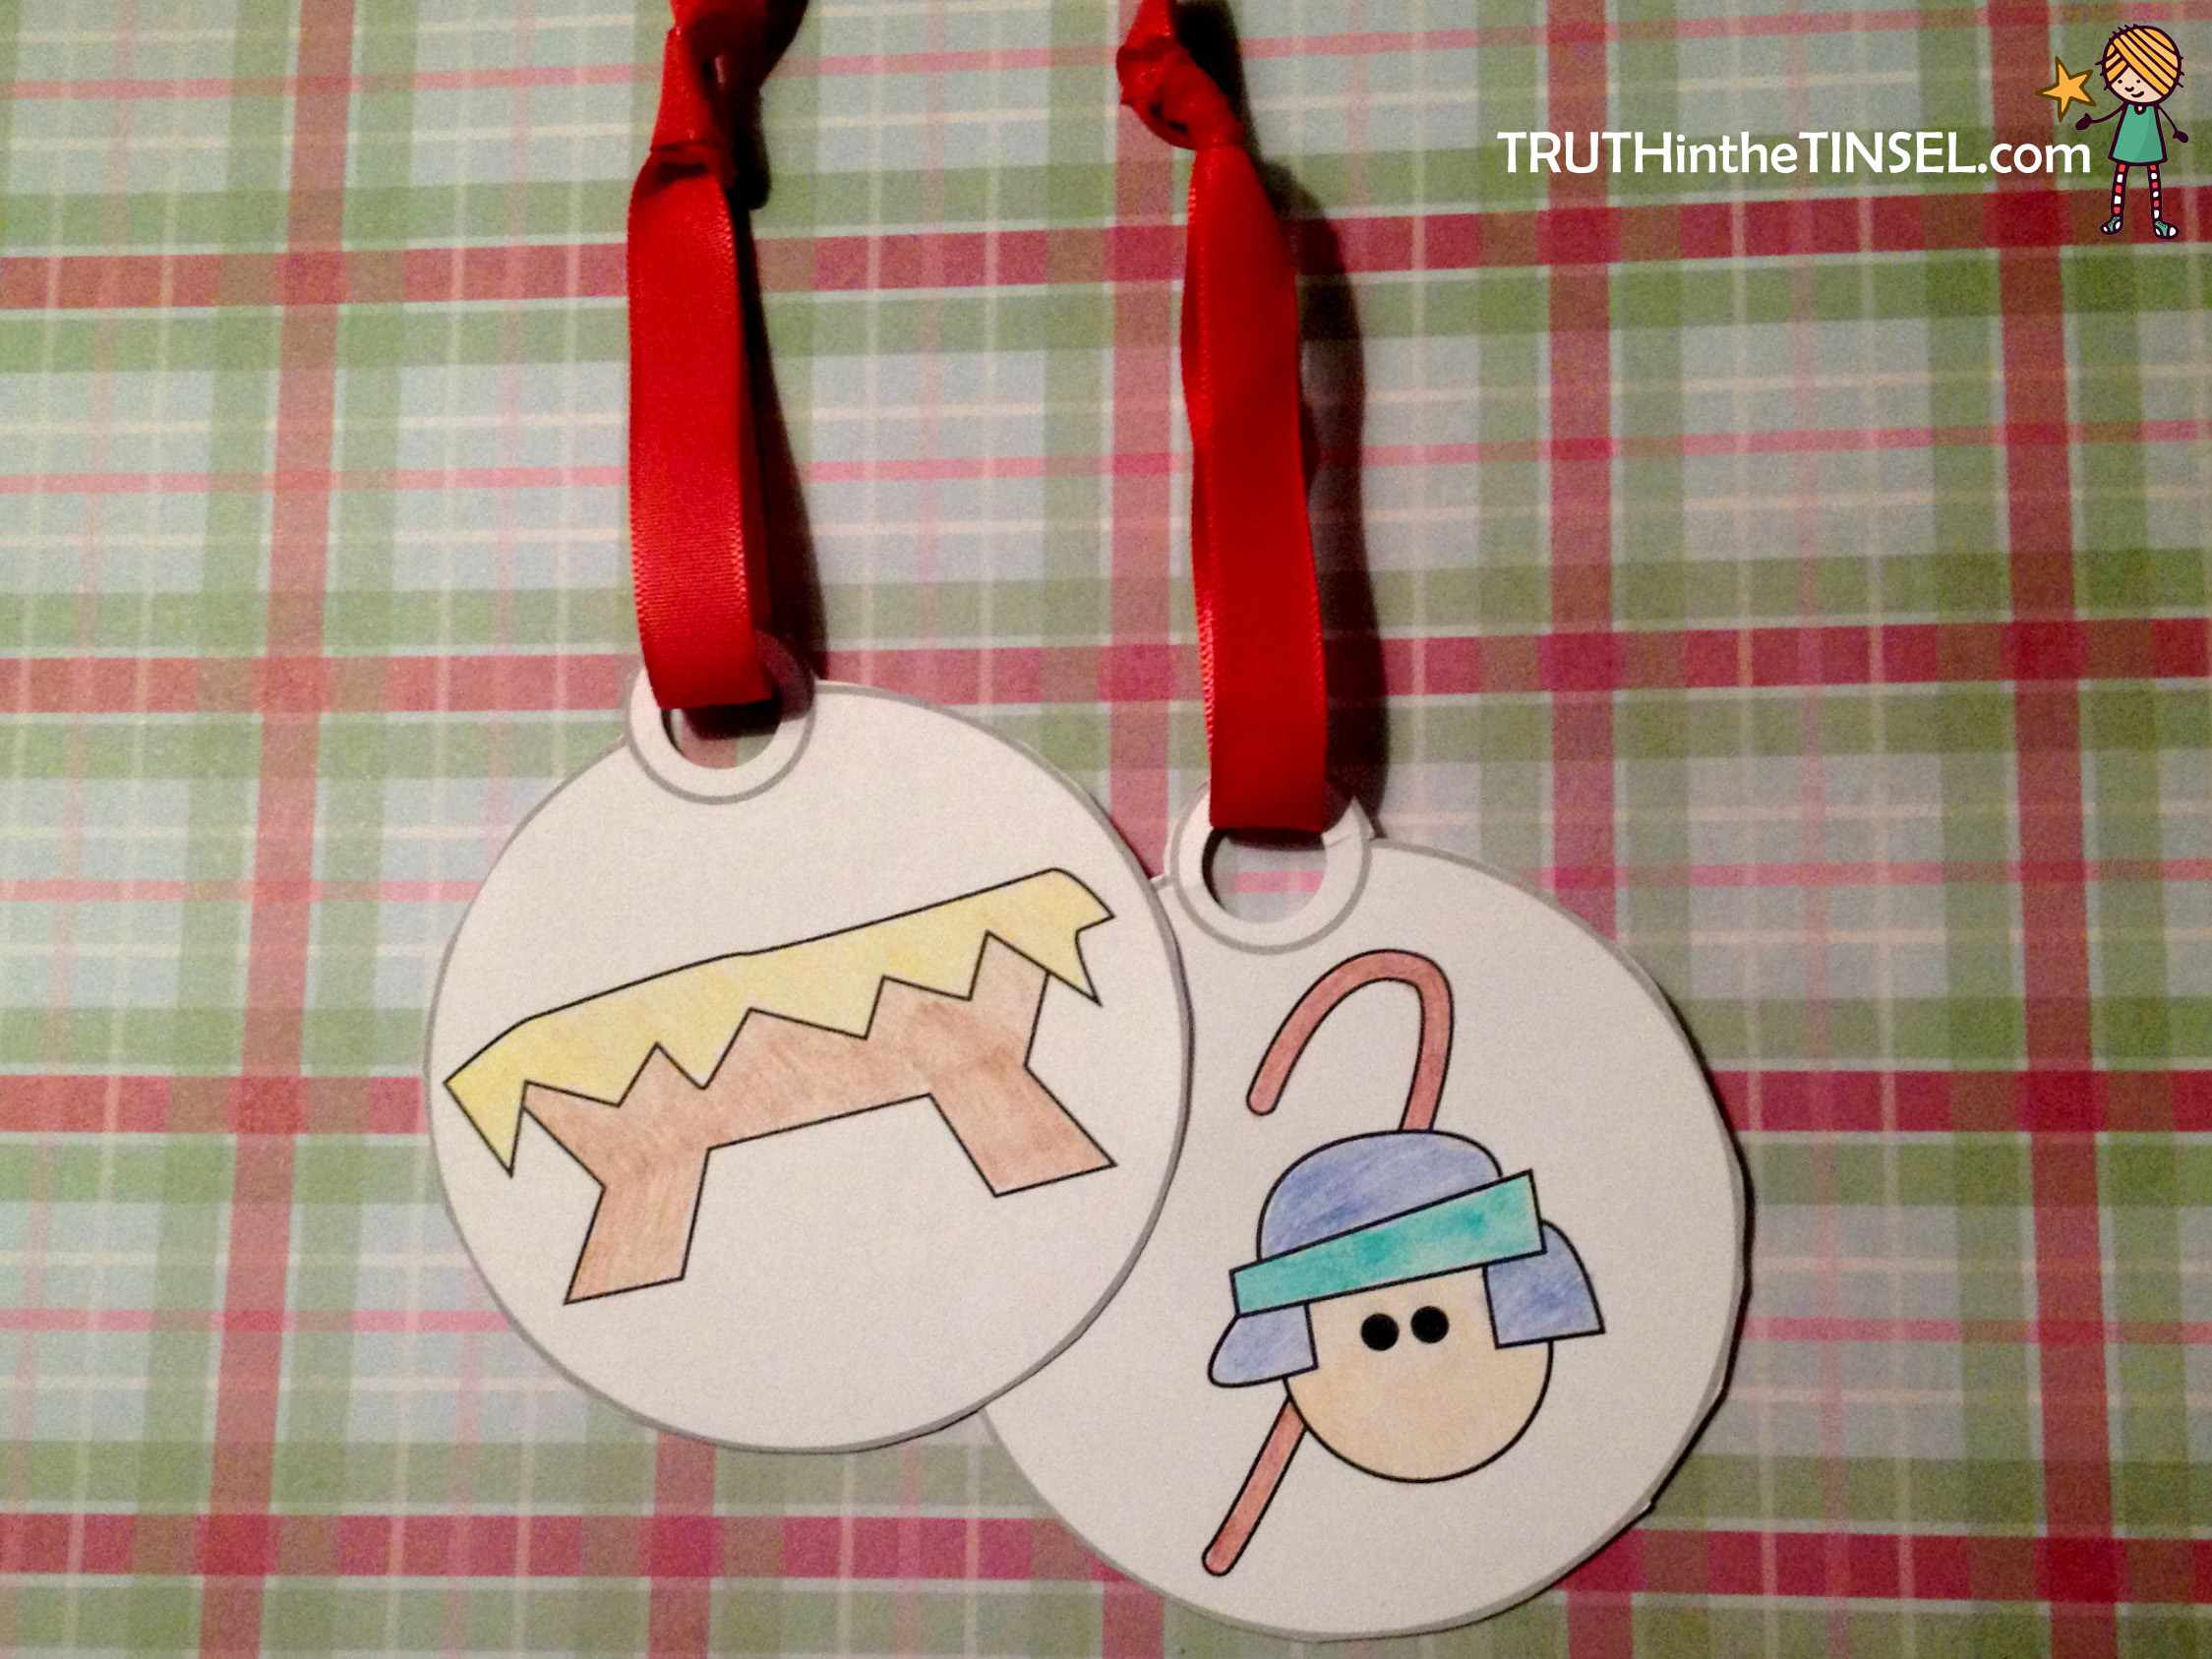 Printable Ornaments for Truth in the Tinsel